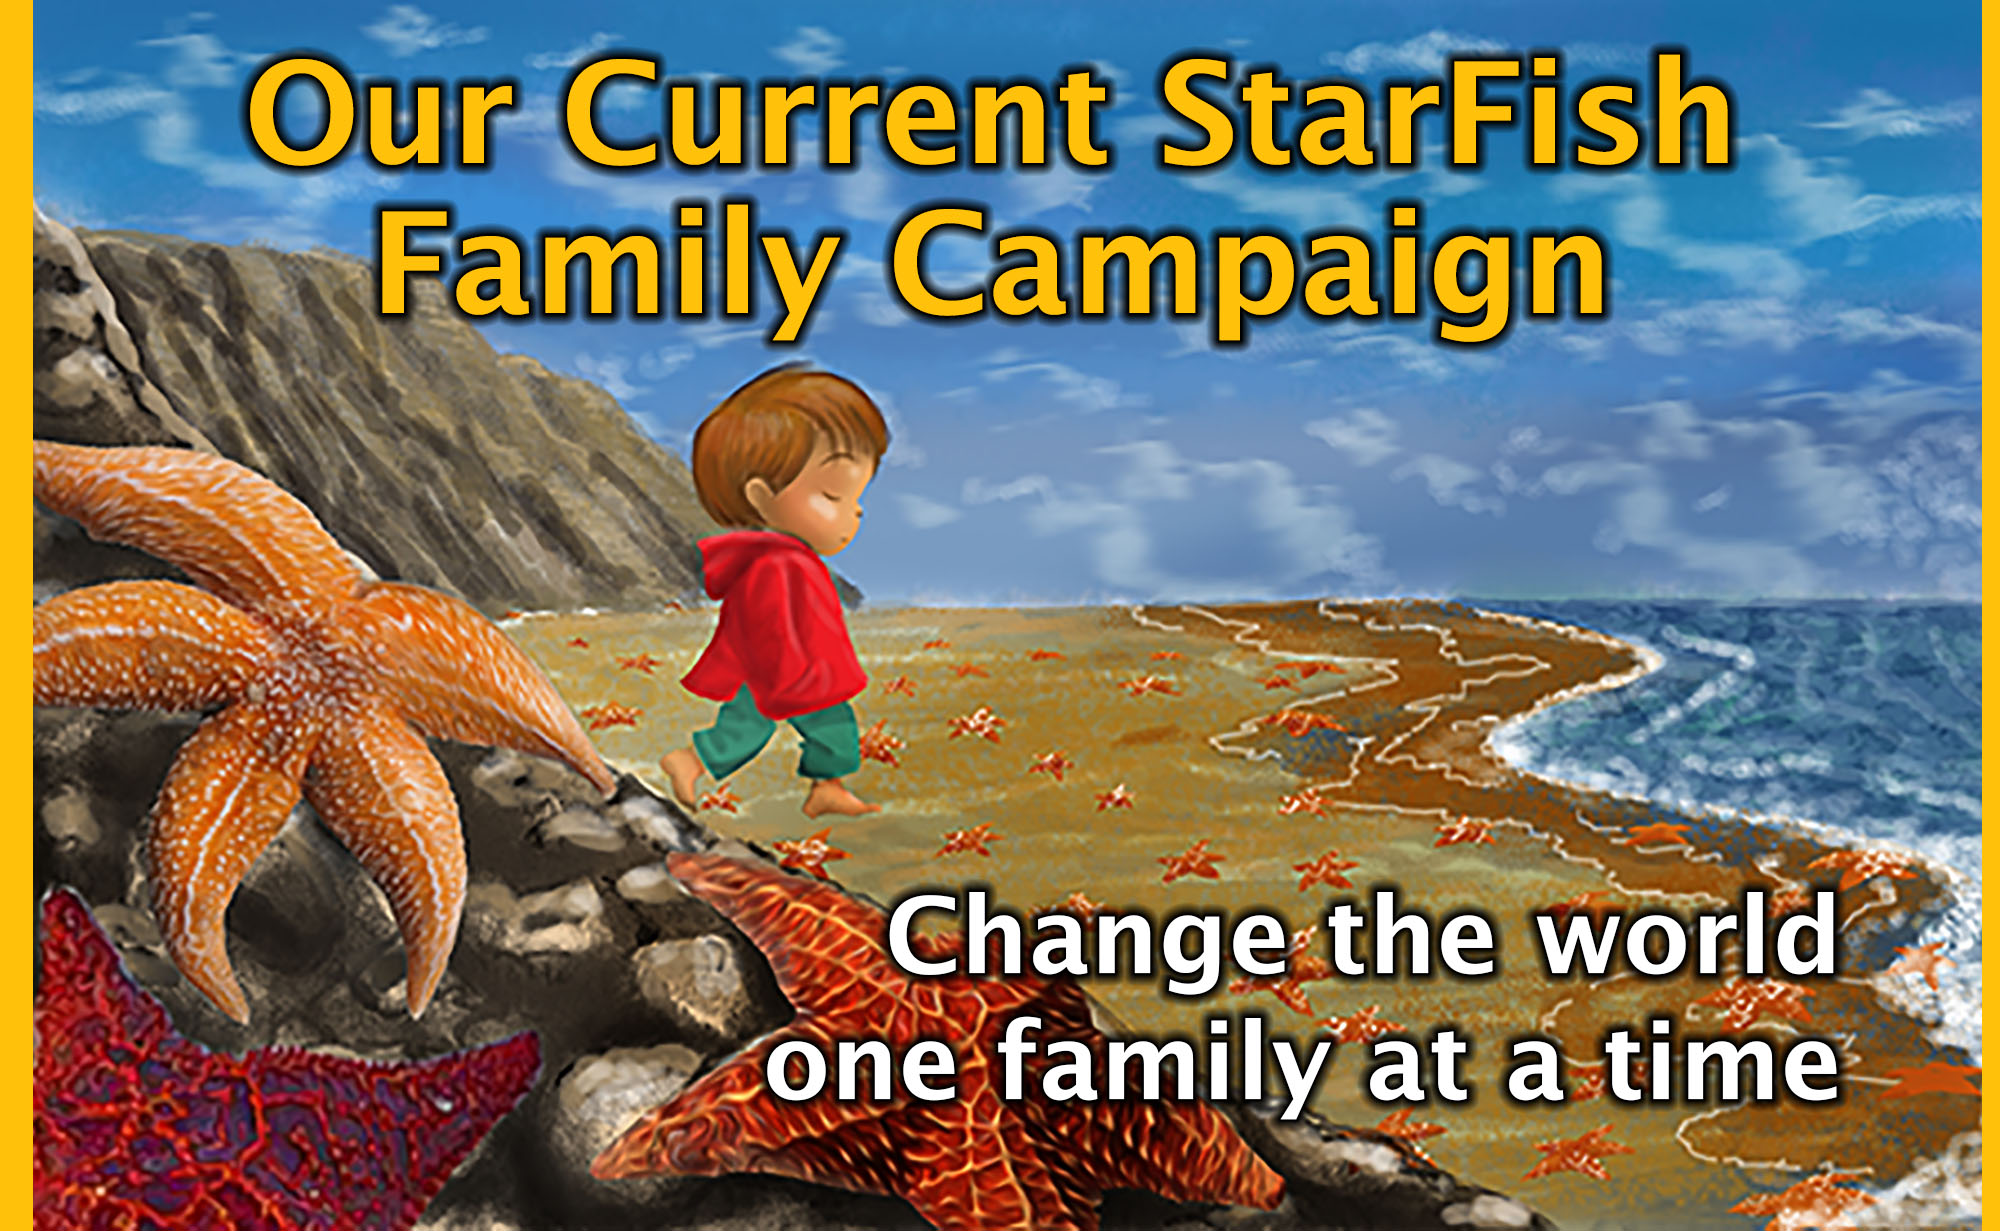 Current StarFish Video Project Campaign